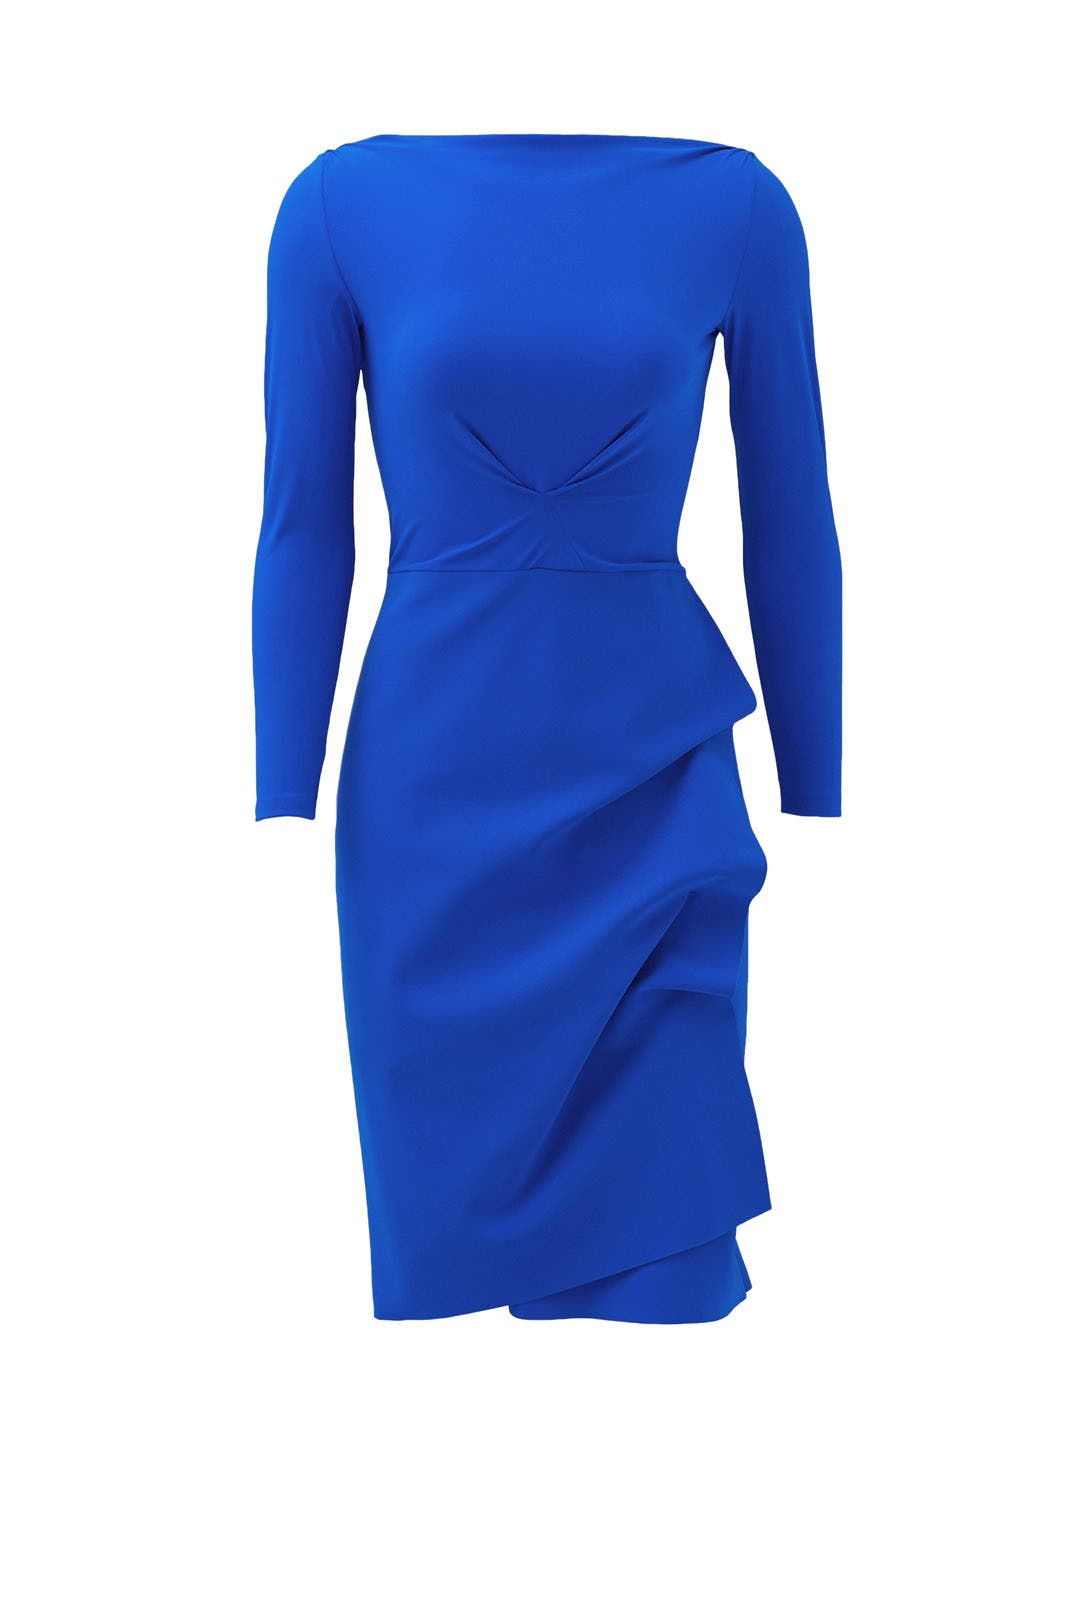 Chiara Boni The Most Popular Dress In America: Navy Cassandre Sheath By La Petite Robe Di Chiara Boni For